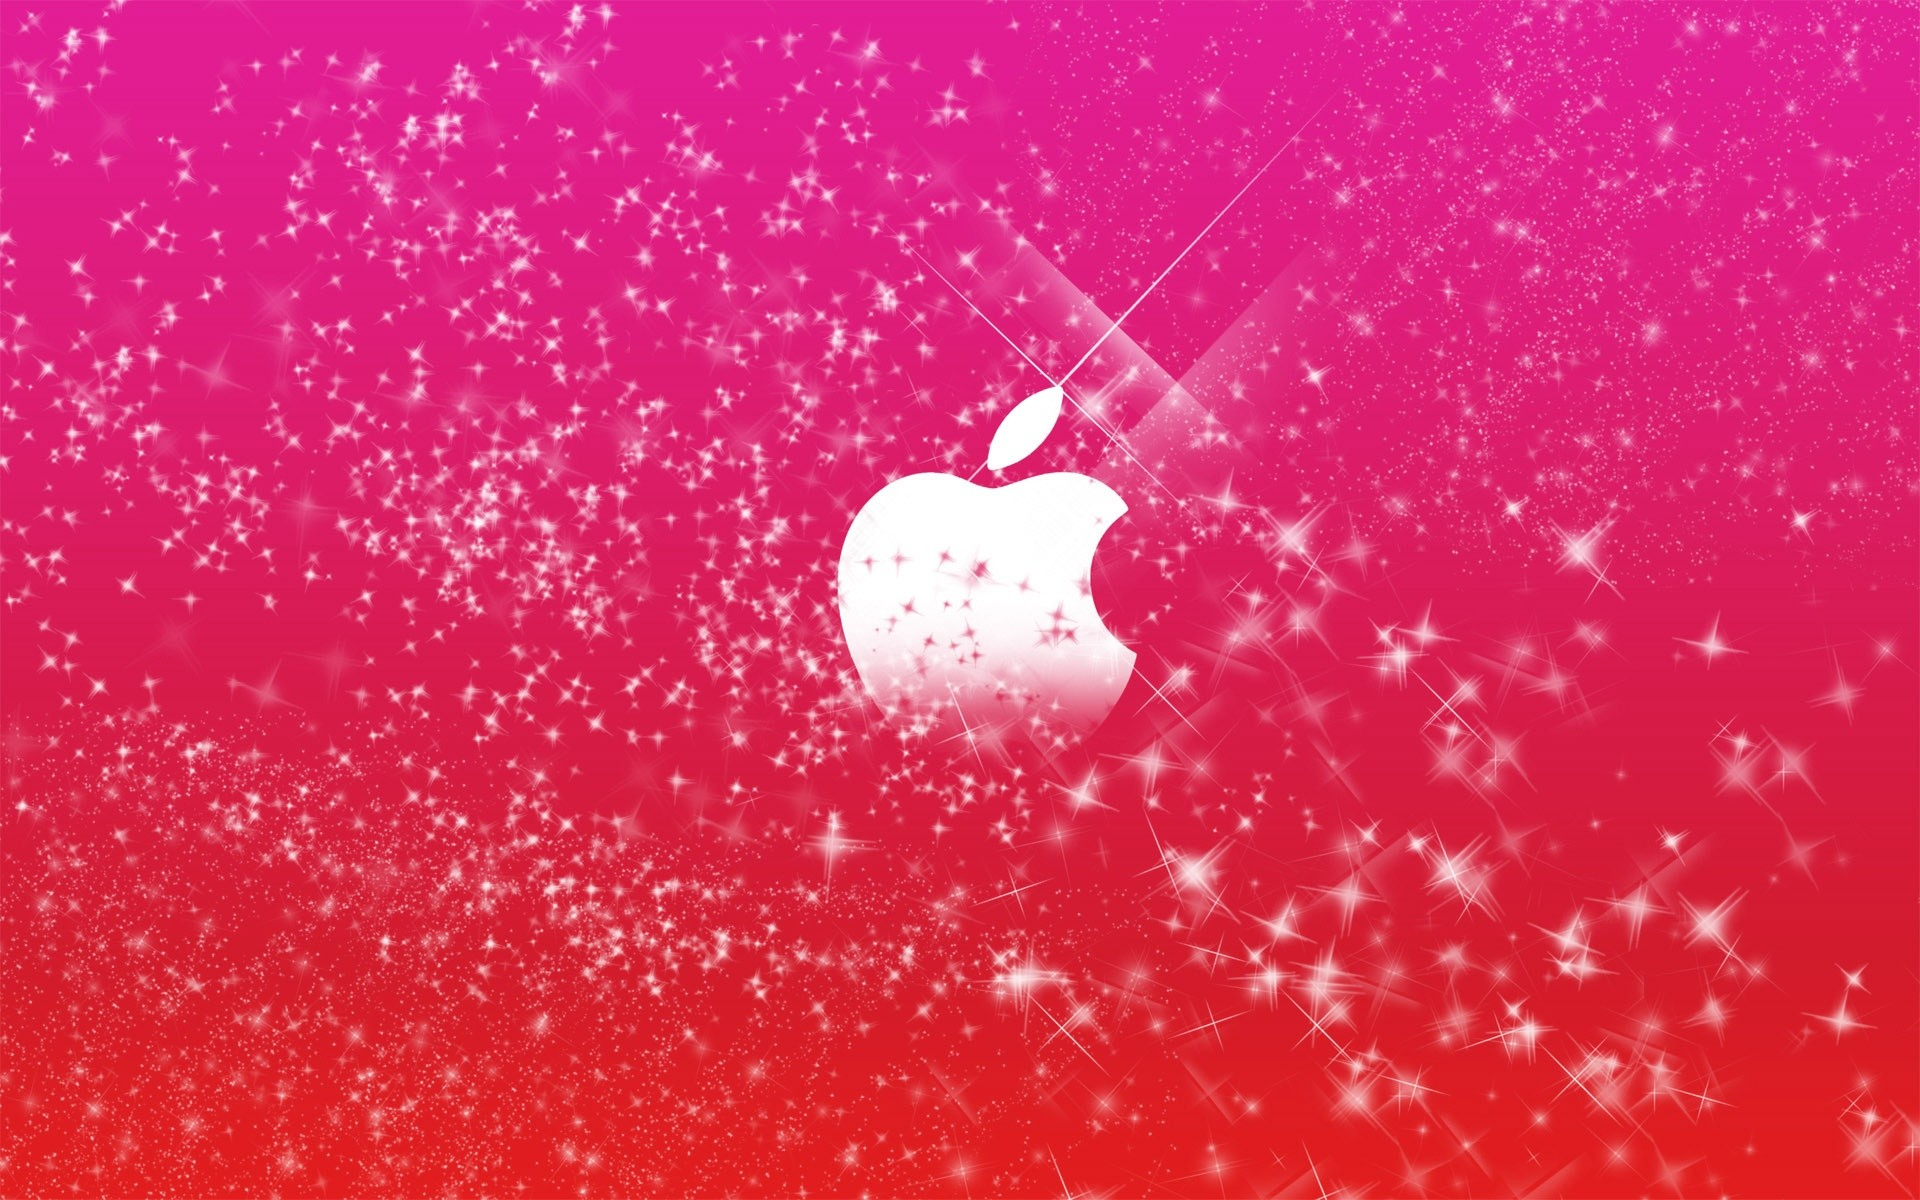 Res: 1920x1200, Sparkly Apple Wallpaper